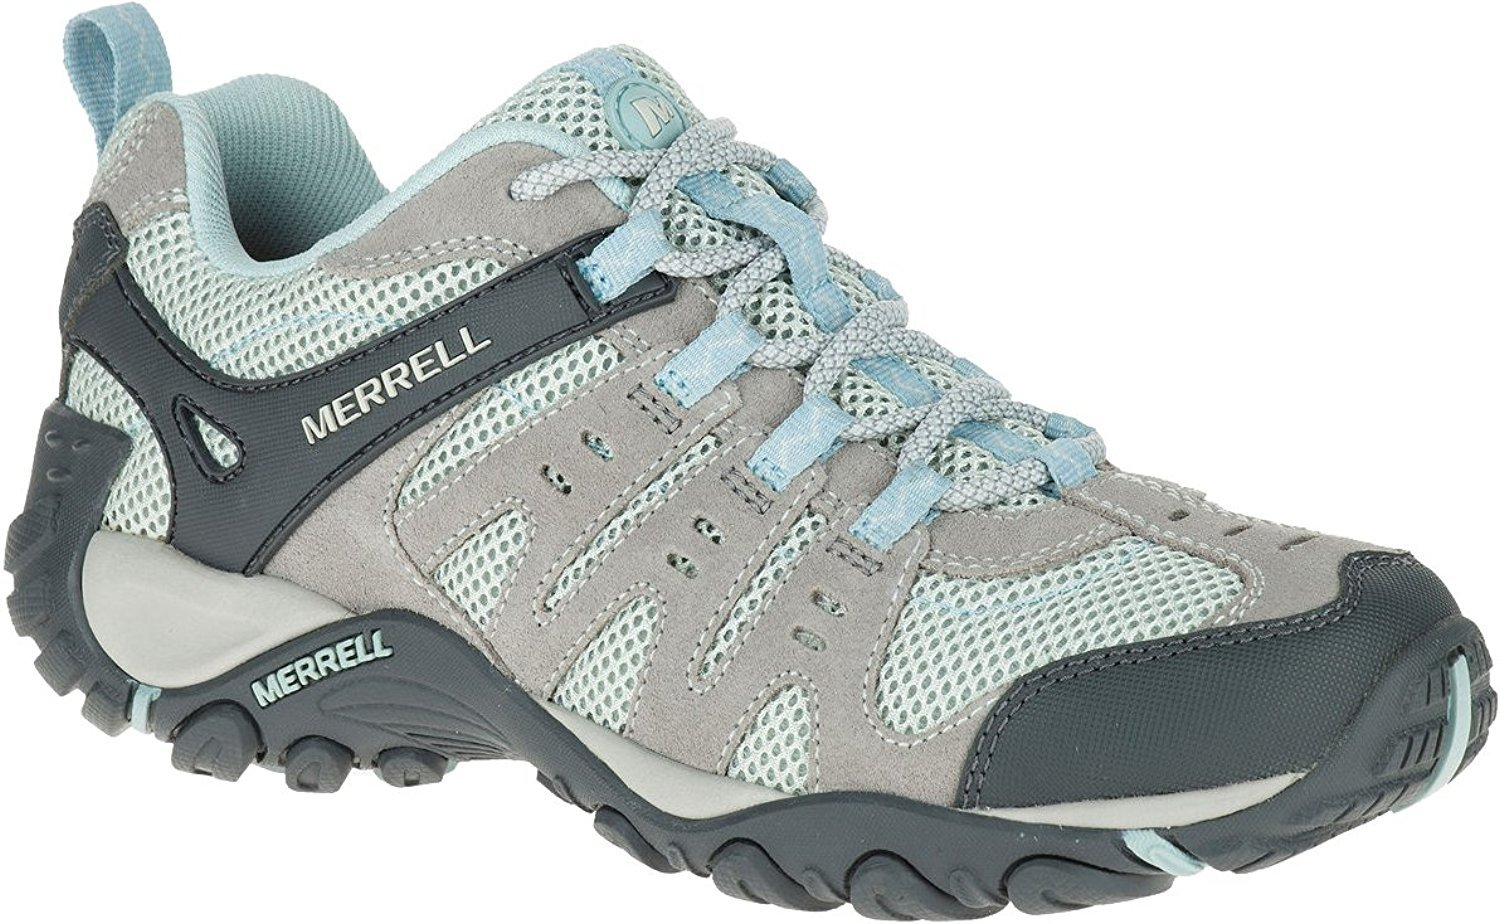 Merrell Women's Accentor Hiking Boot B07B9MP98S 7.5 B(M) US|Wild Dove/Cloud Blue